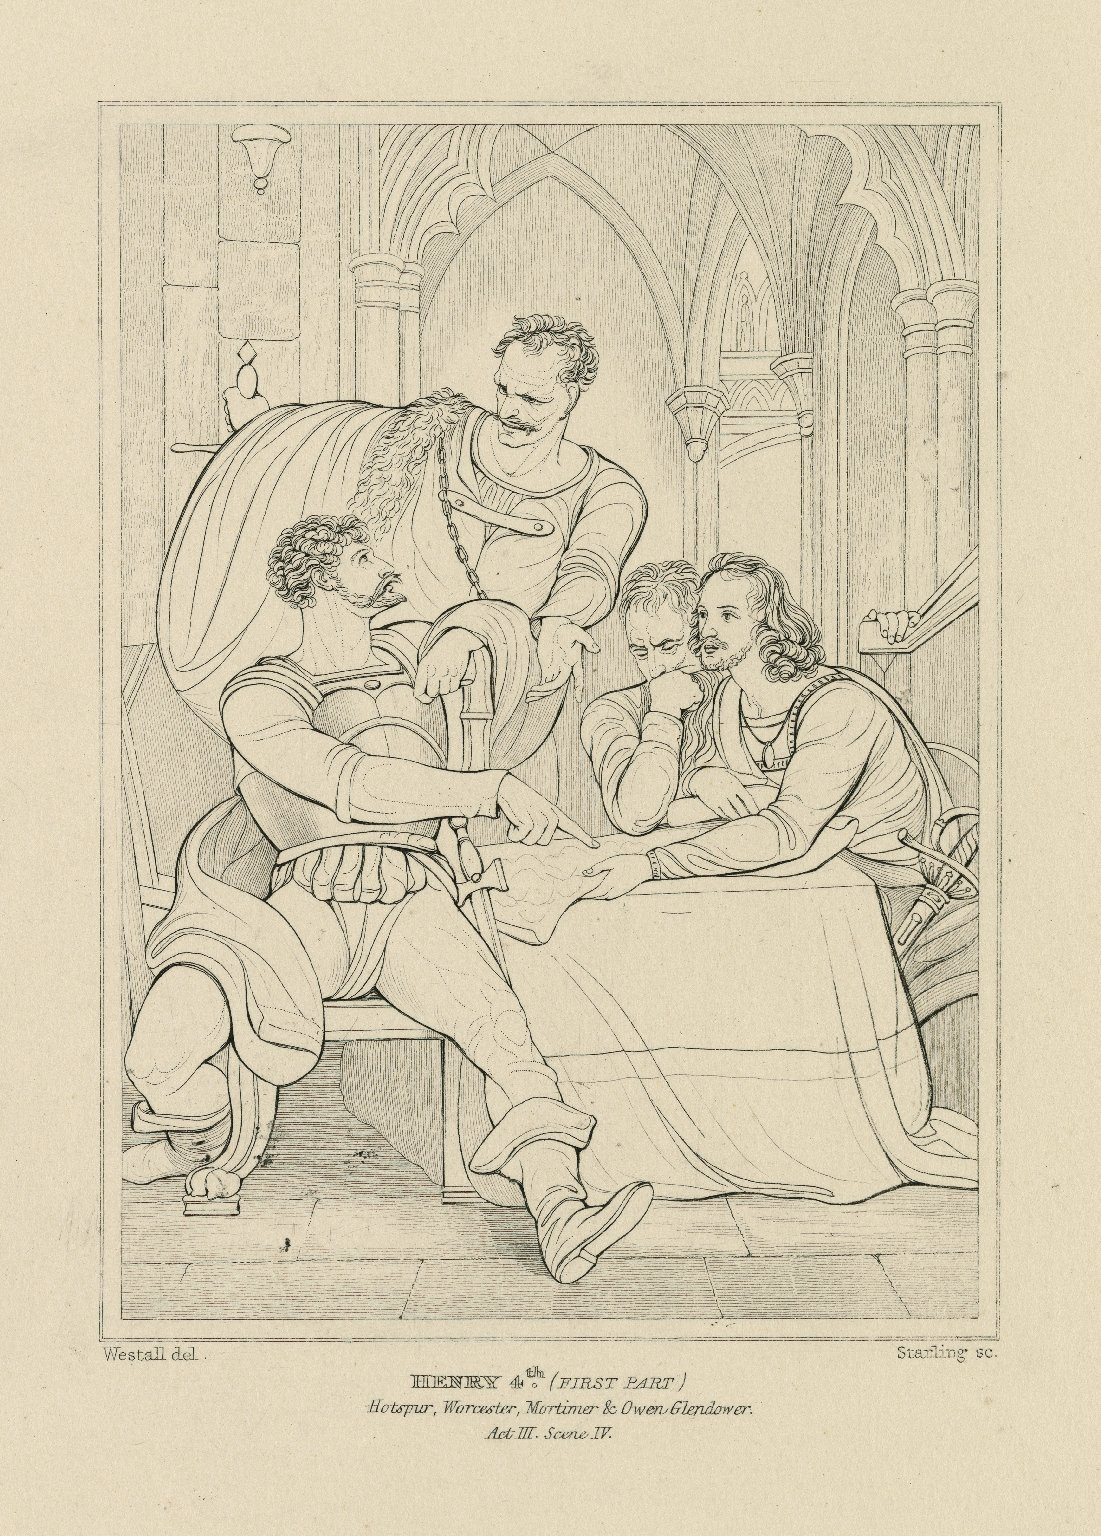 Henry 4th (first part), Hotspur, Worcester, Mortimer & Owen Glendower, act III, scene IV [i.e., 1] [graphic] / Westall, del. ; Starling, sc.